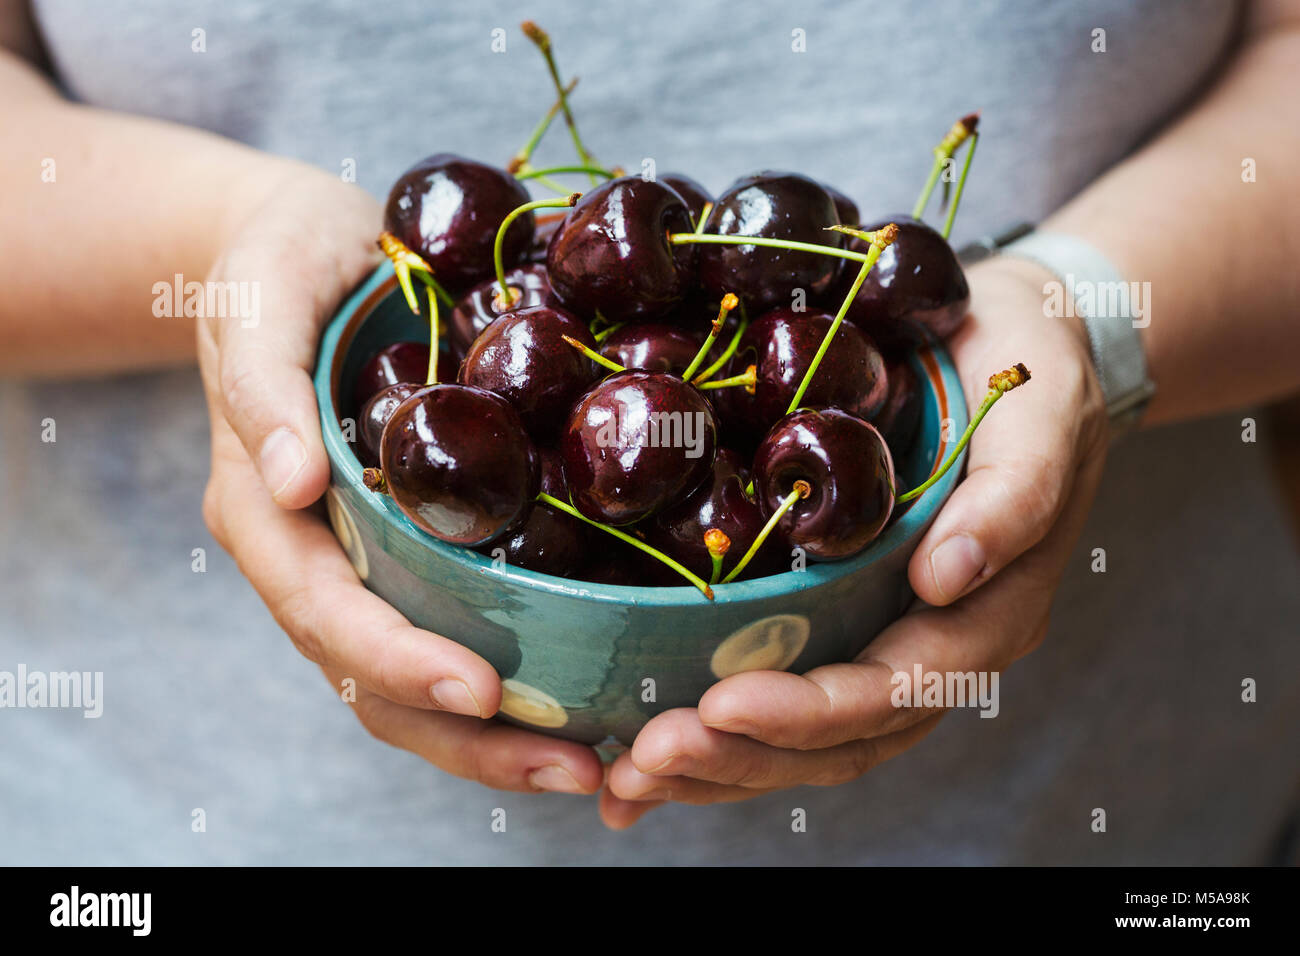 A woman's hands holding a bowl of ripe dark red cherries. - Stock Image